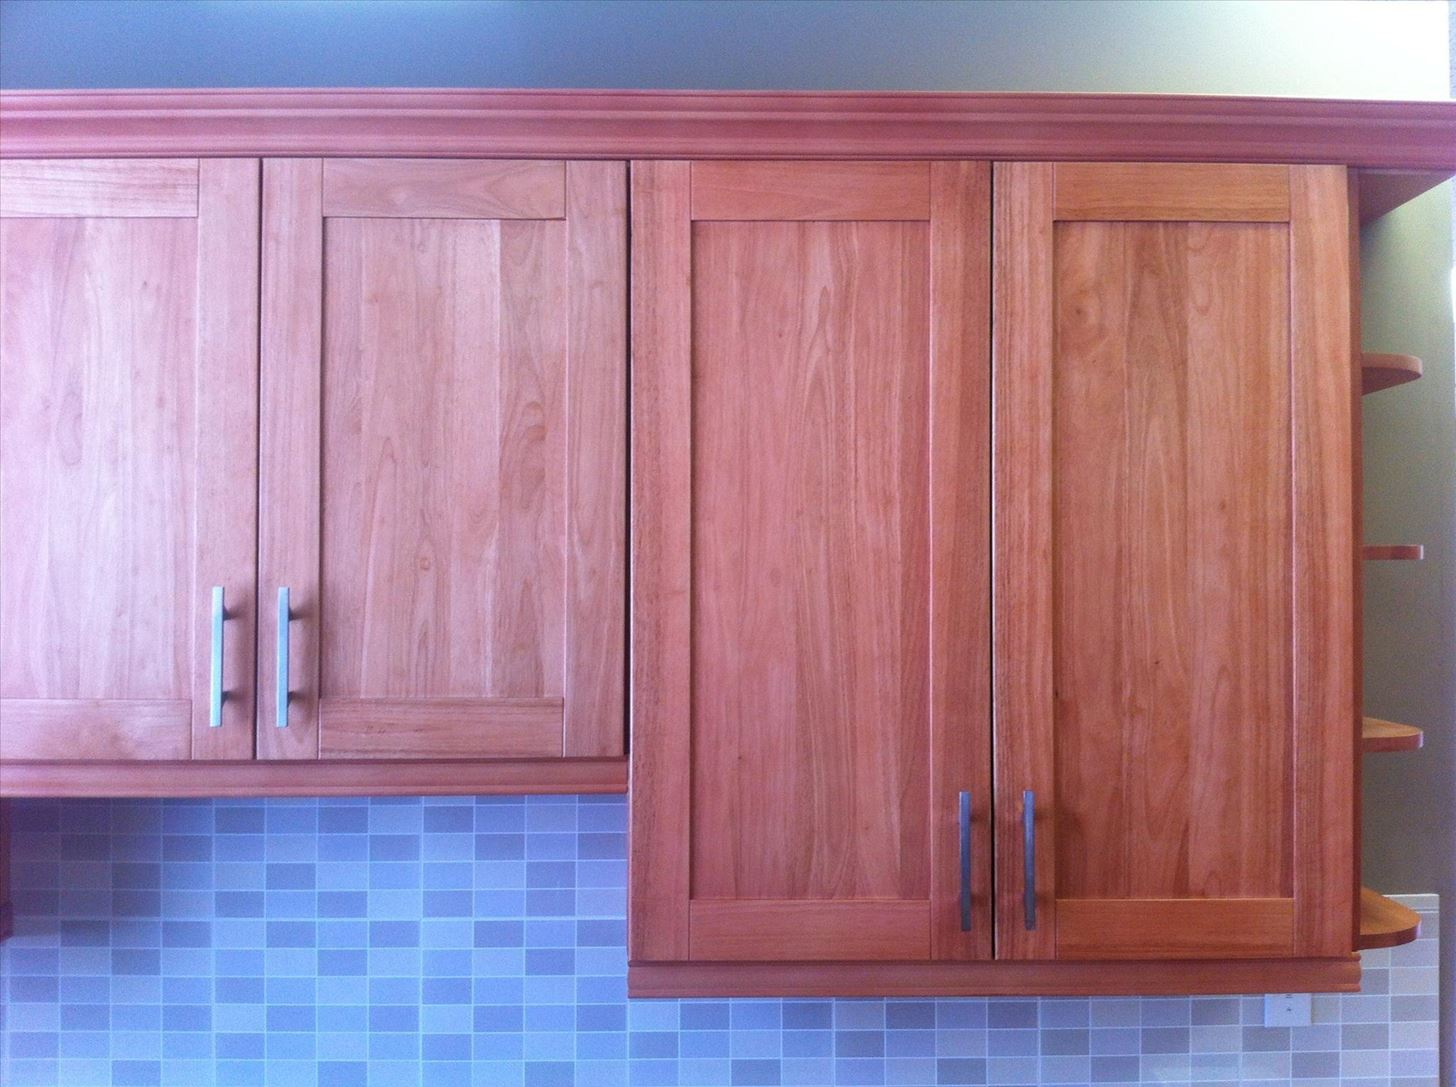 How To Adjust The Alignment Of Cabinet Doors Construction Repair Wonderhowto